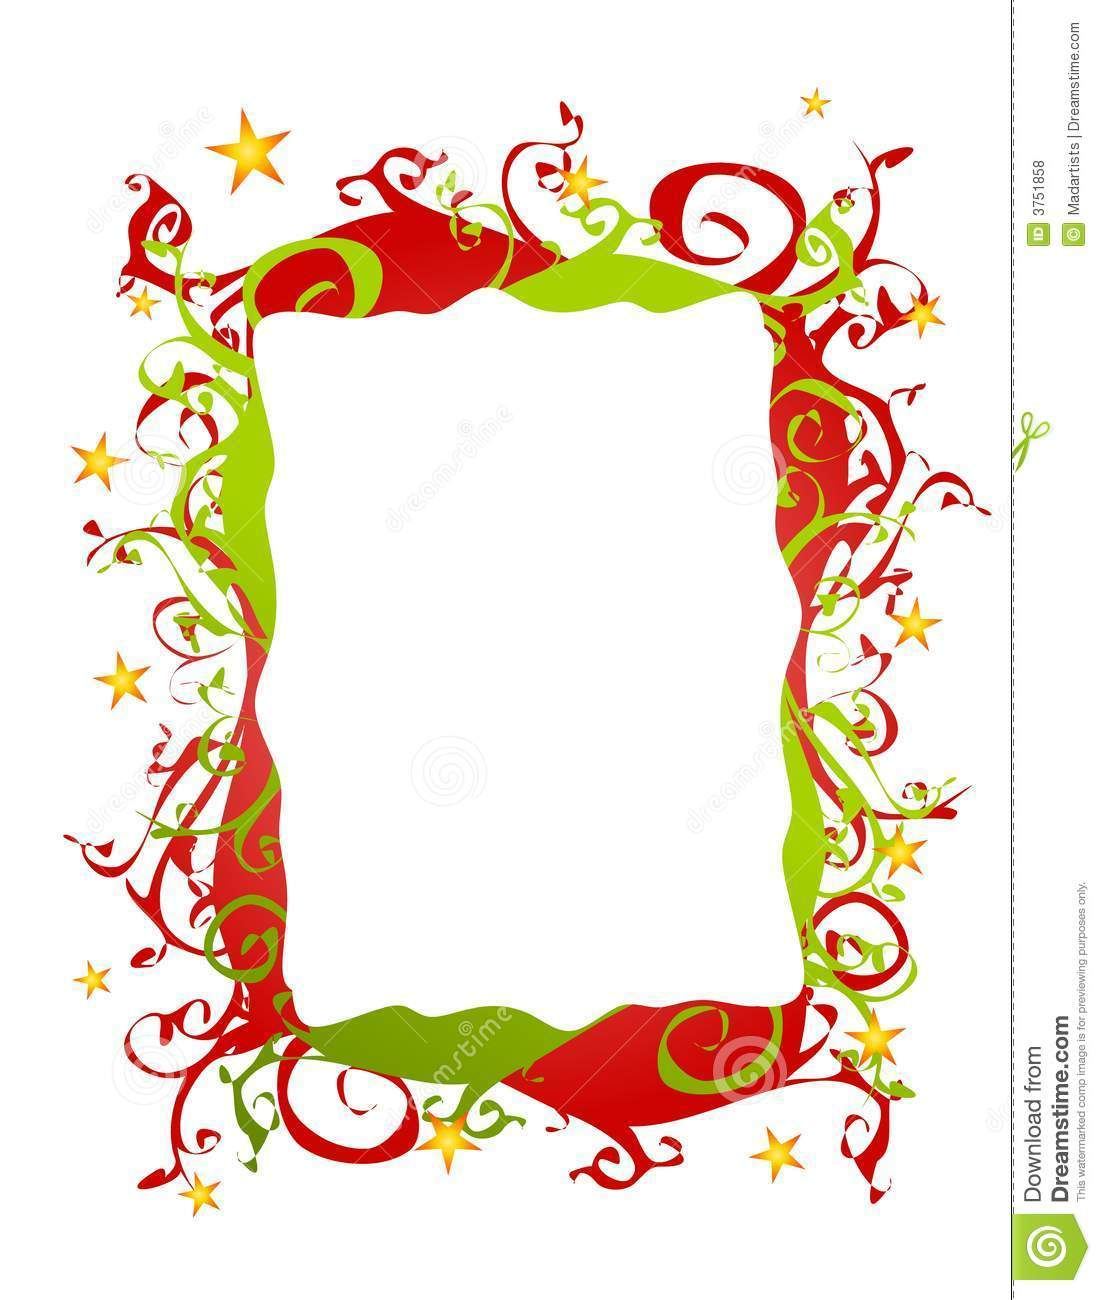 Christmas frame clipart free download 5 » Clipart Portal.